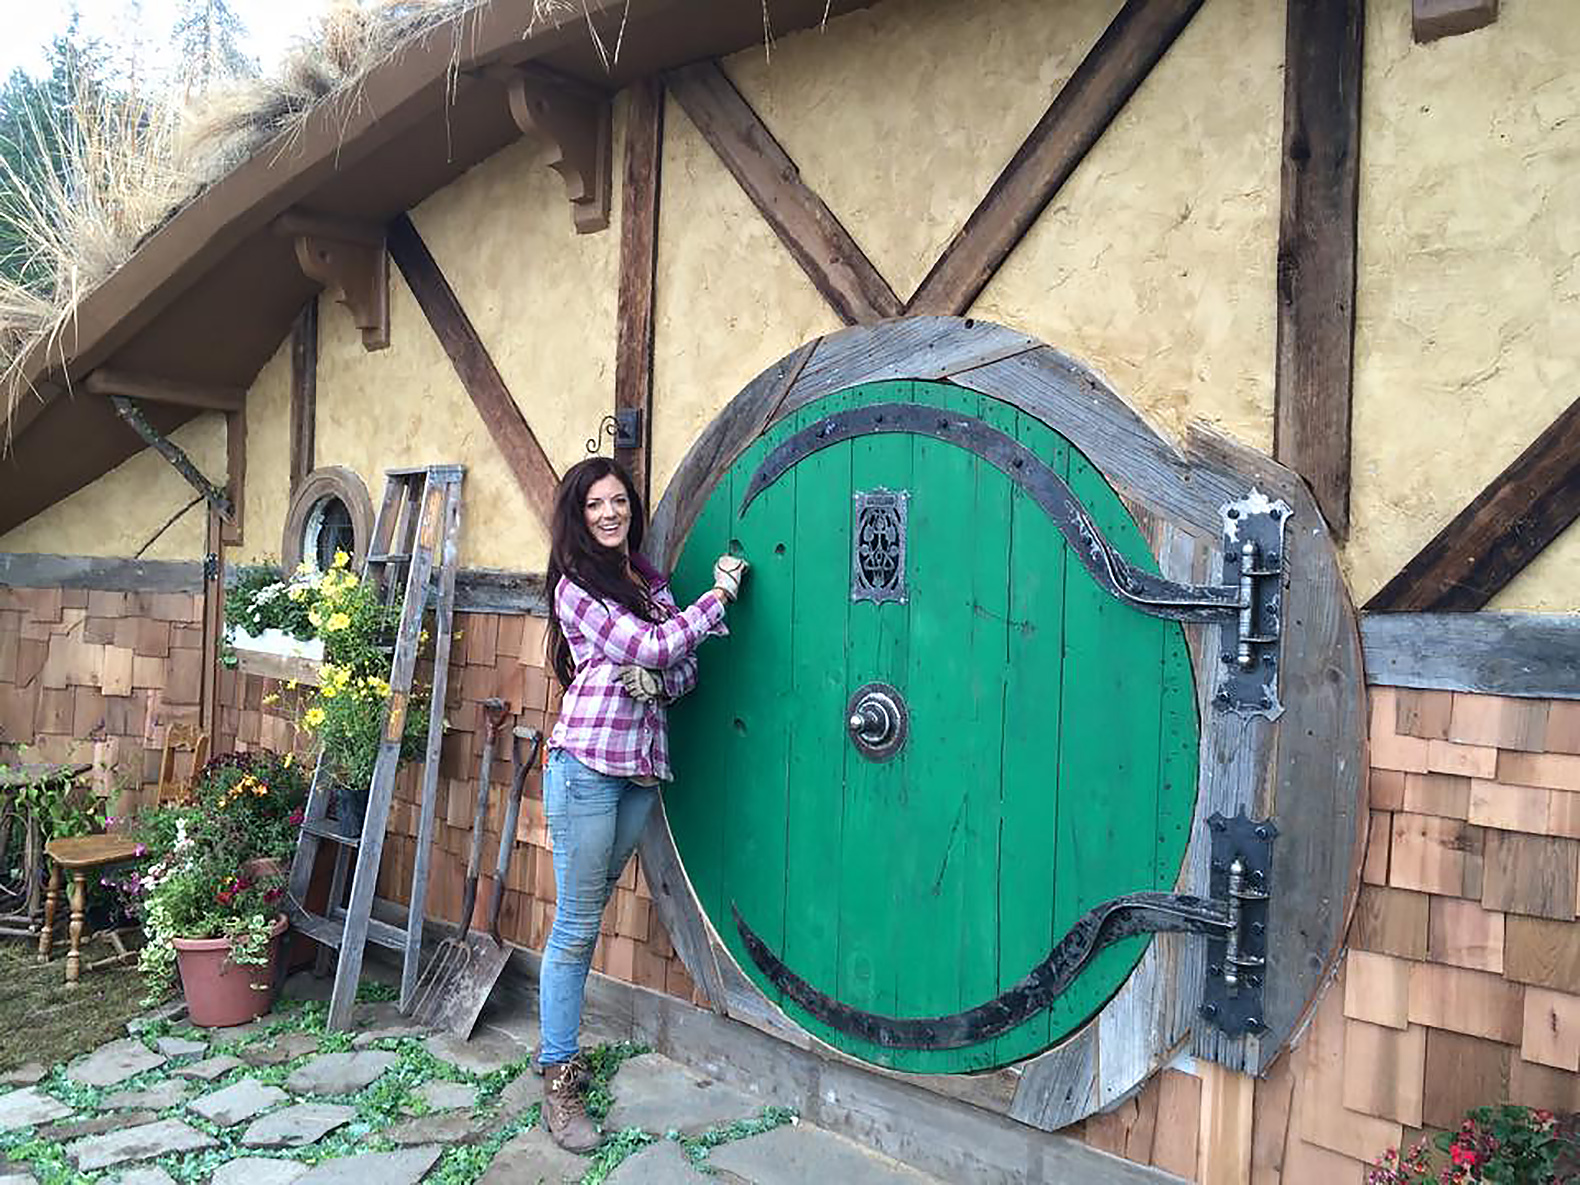 Hobbit Hole House washington hobbit hole is the first of three in an off-grid shire